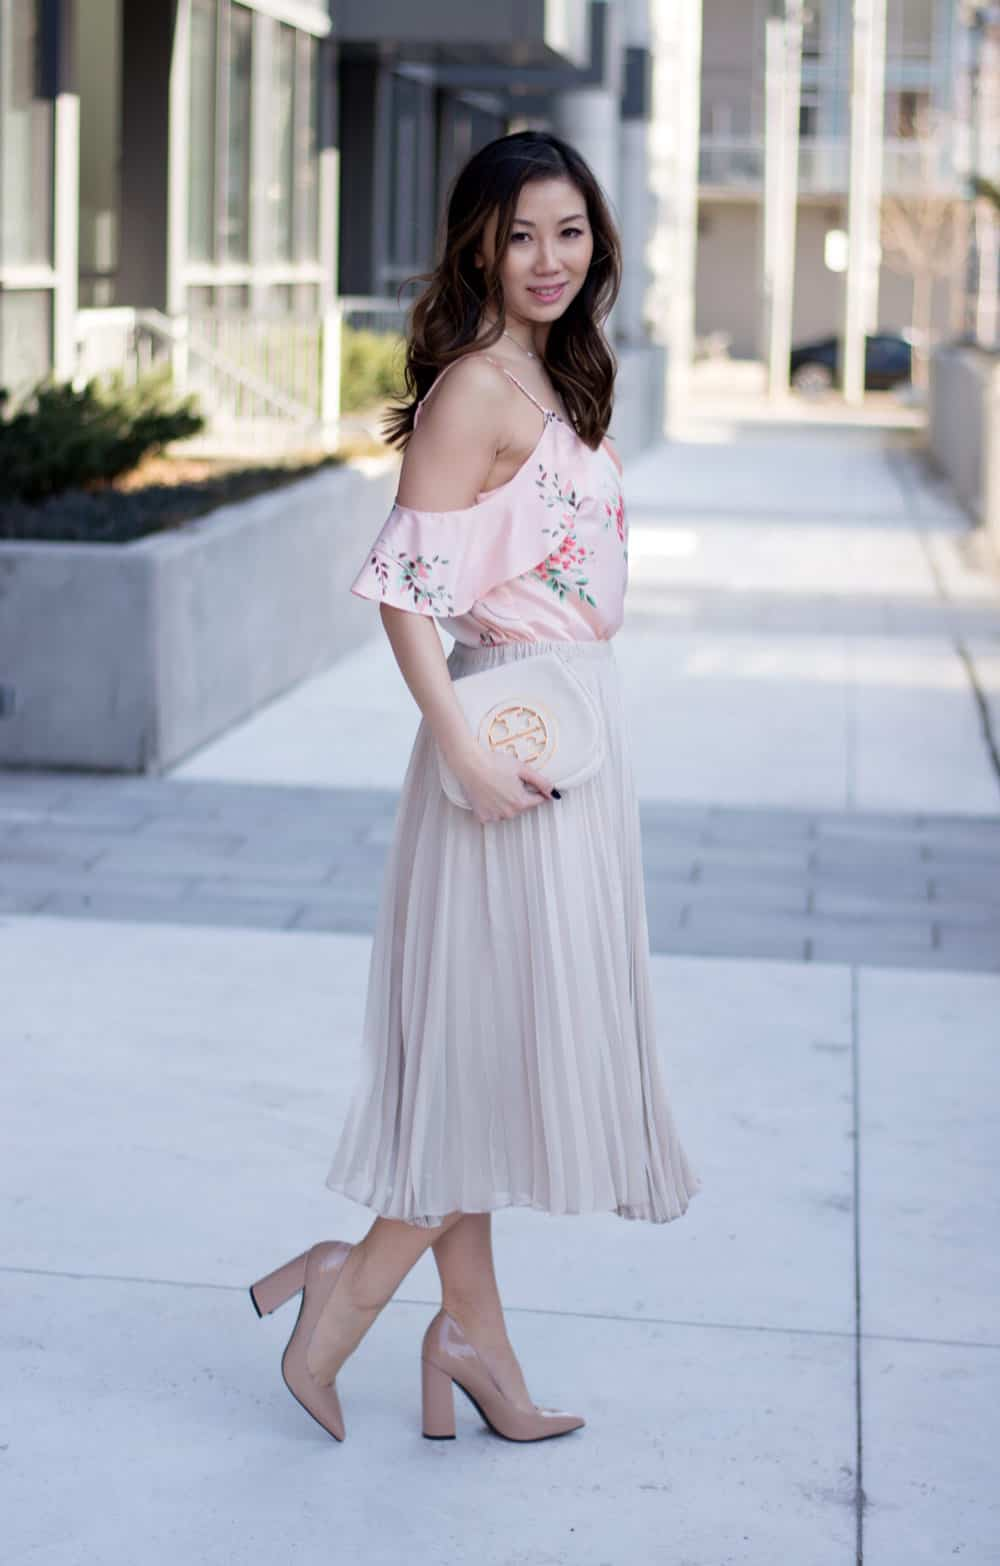 Spring Streetstyle: Pretty pleated skirt and floral print top from LC Lauren Conrad Dress Up Shop